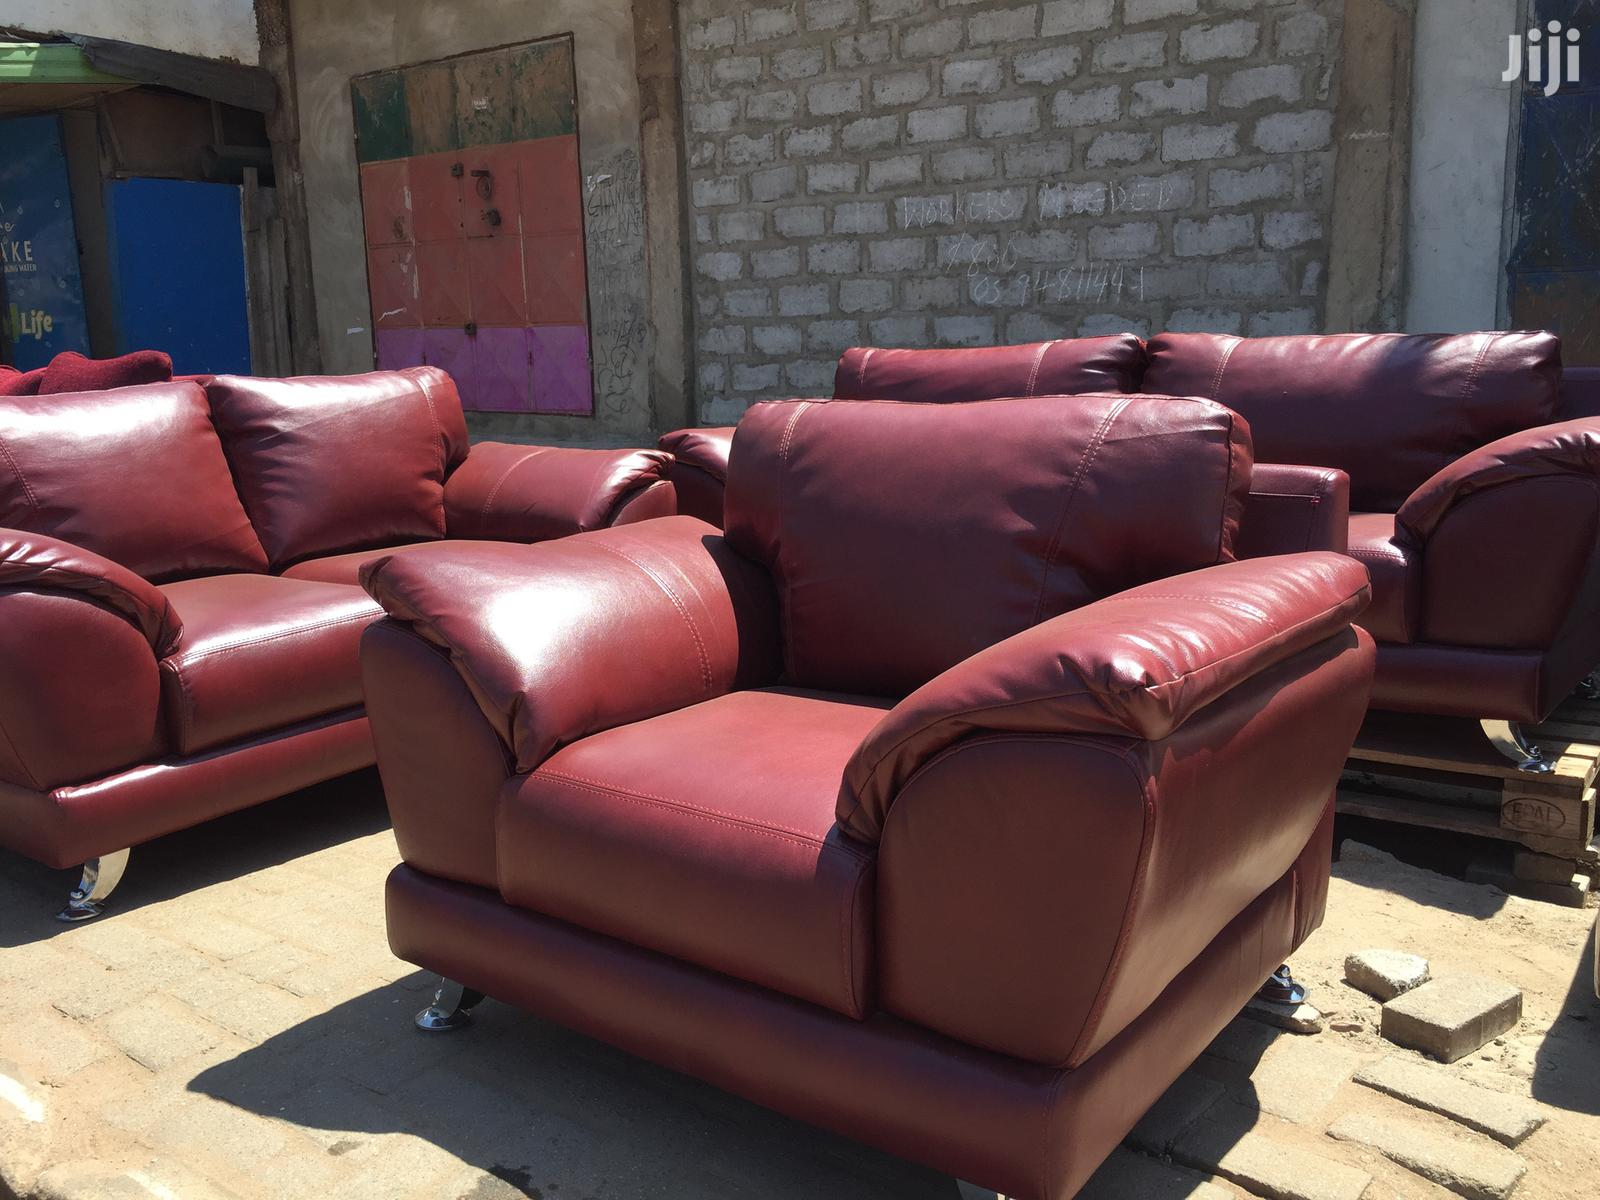 Couches At Affordable Prices   Furniture for sale in Accra Metropolitan, Greater Accra, Ghana